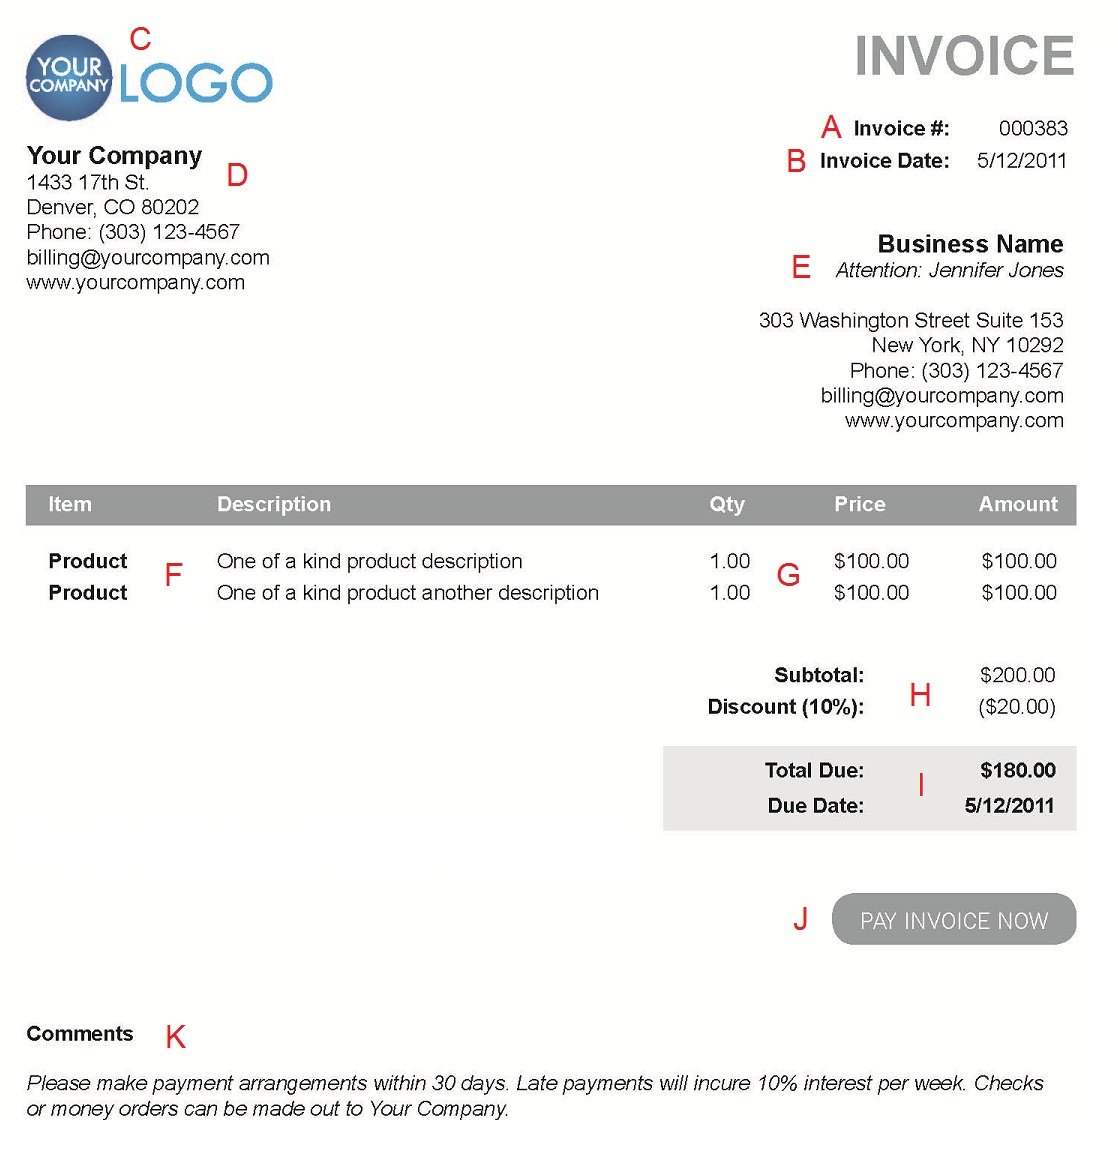 Sandiegolocksmithsus  Outstanding The  Different Sections Of An Electronic Payment Invoice With Extraordinary A  With Charming Sabre Virtually There E Ticket Receipt Also Online Premium Receipt Of Lic In Addition Definition Of A Receipt And Rent Receipt For Income Tax As Well As Receipt Html Template Additionally Garage Receipt Template From Paysimplecom With Sandiegolocksmithsus  Extraordinary The  Different Sections Of An Electronic Payment Invoice With Charming A  And Outstanding Sabre Virtually There E Ticket Receipt Also Online Premium Receipt Of Lic In Addition Definition Of A Receipt From Paysimplecom